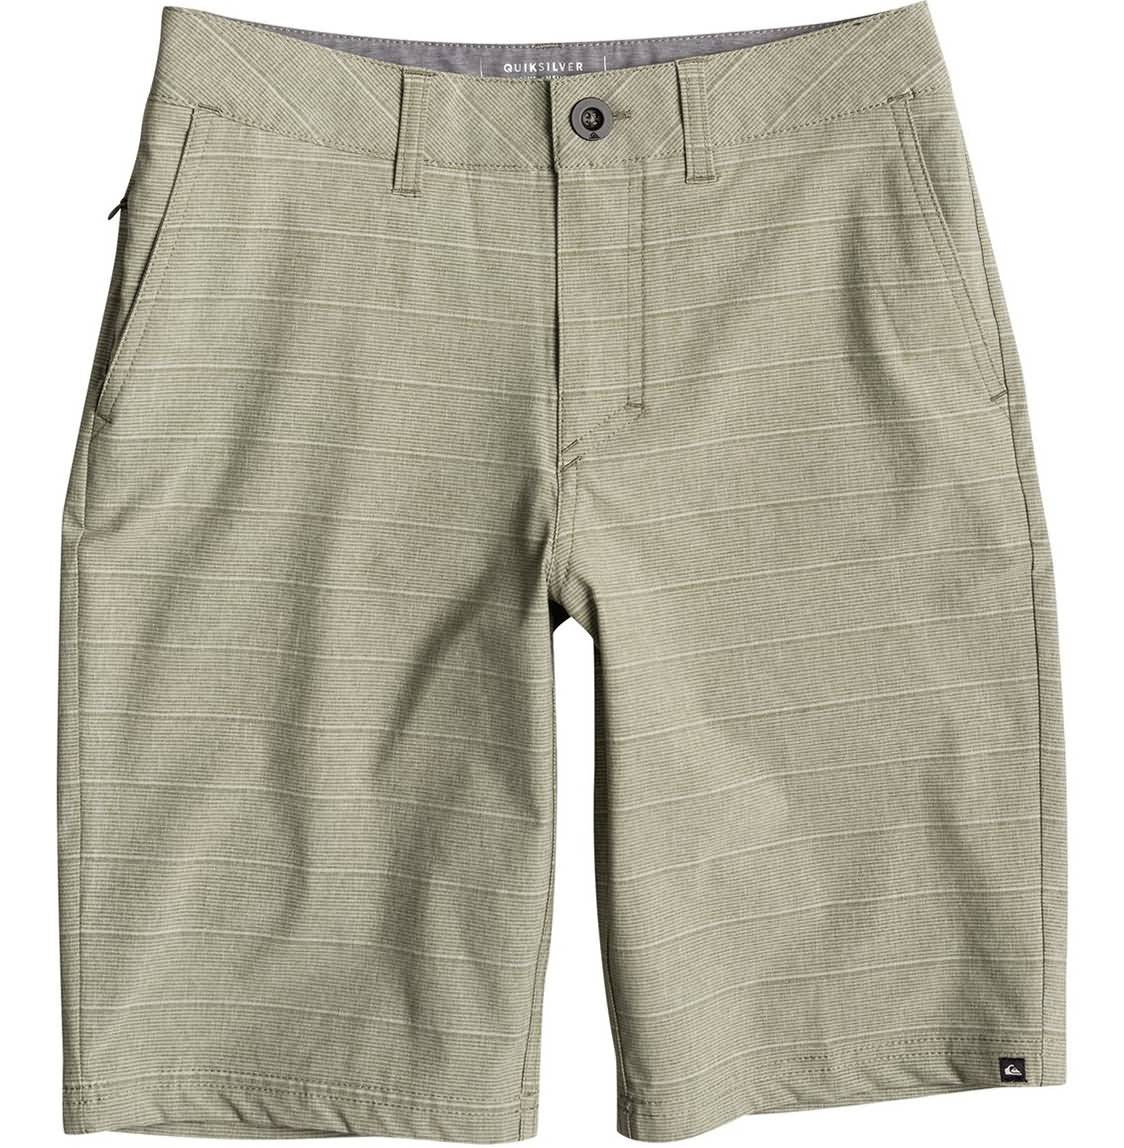 Quiksilver Surf Summer 2017 Apparel | Youth Boys Amphibian Shorts